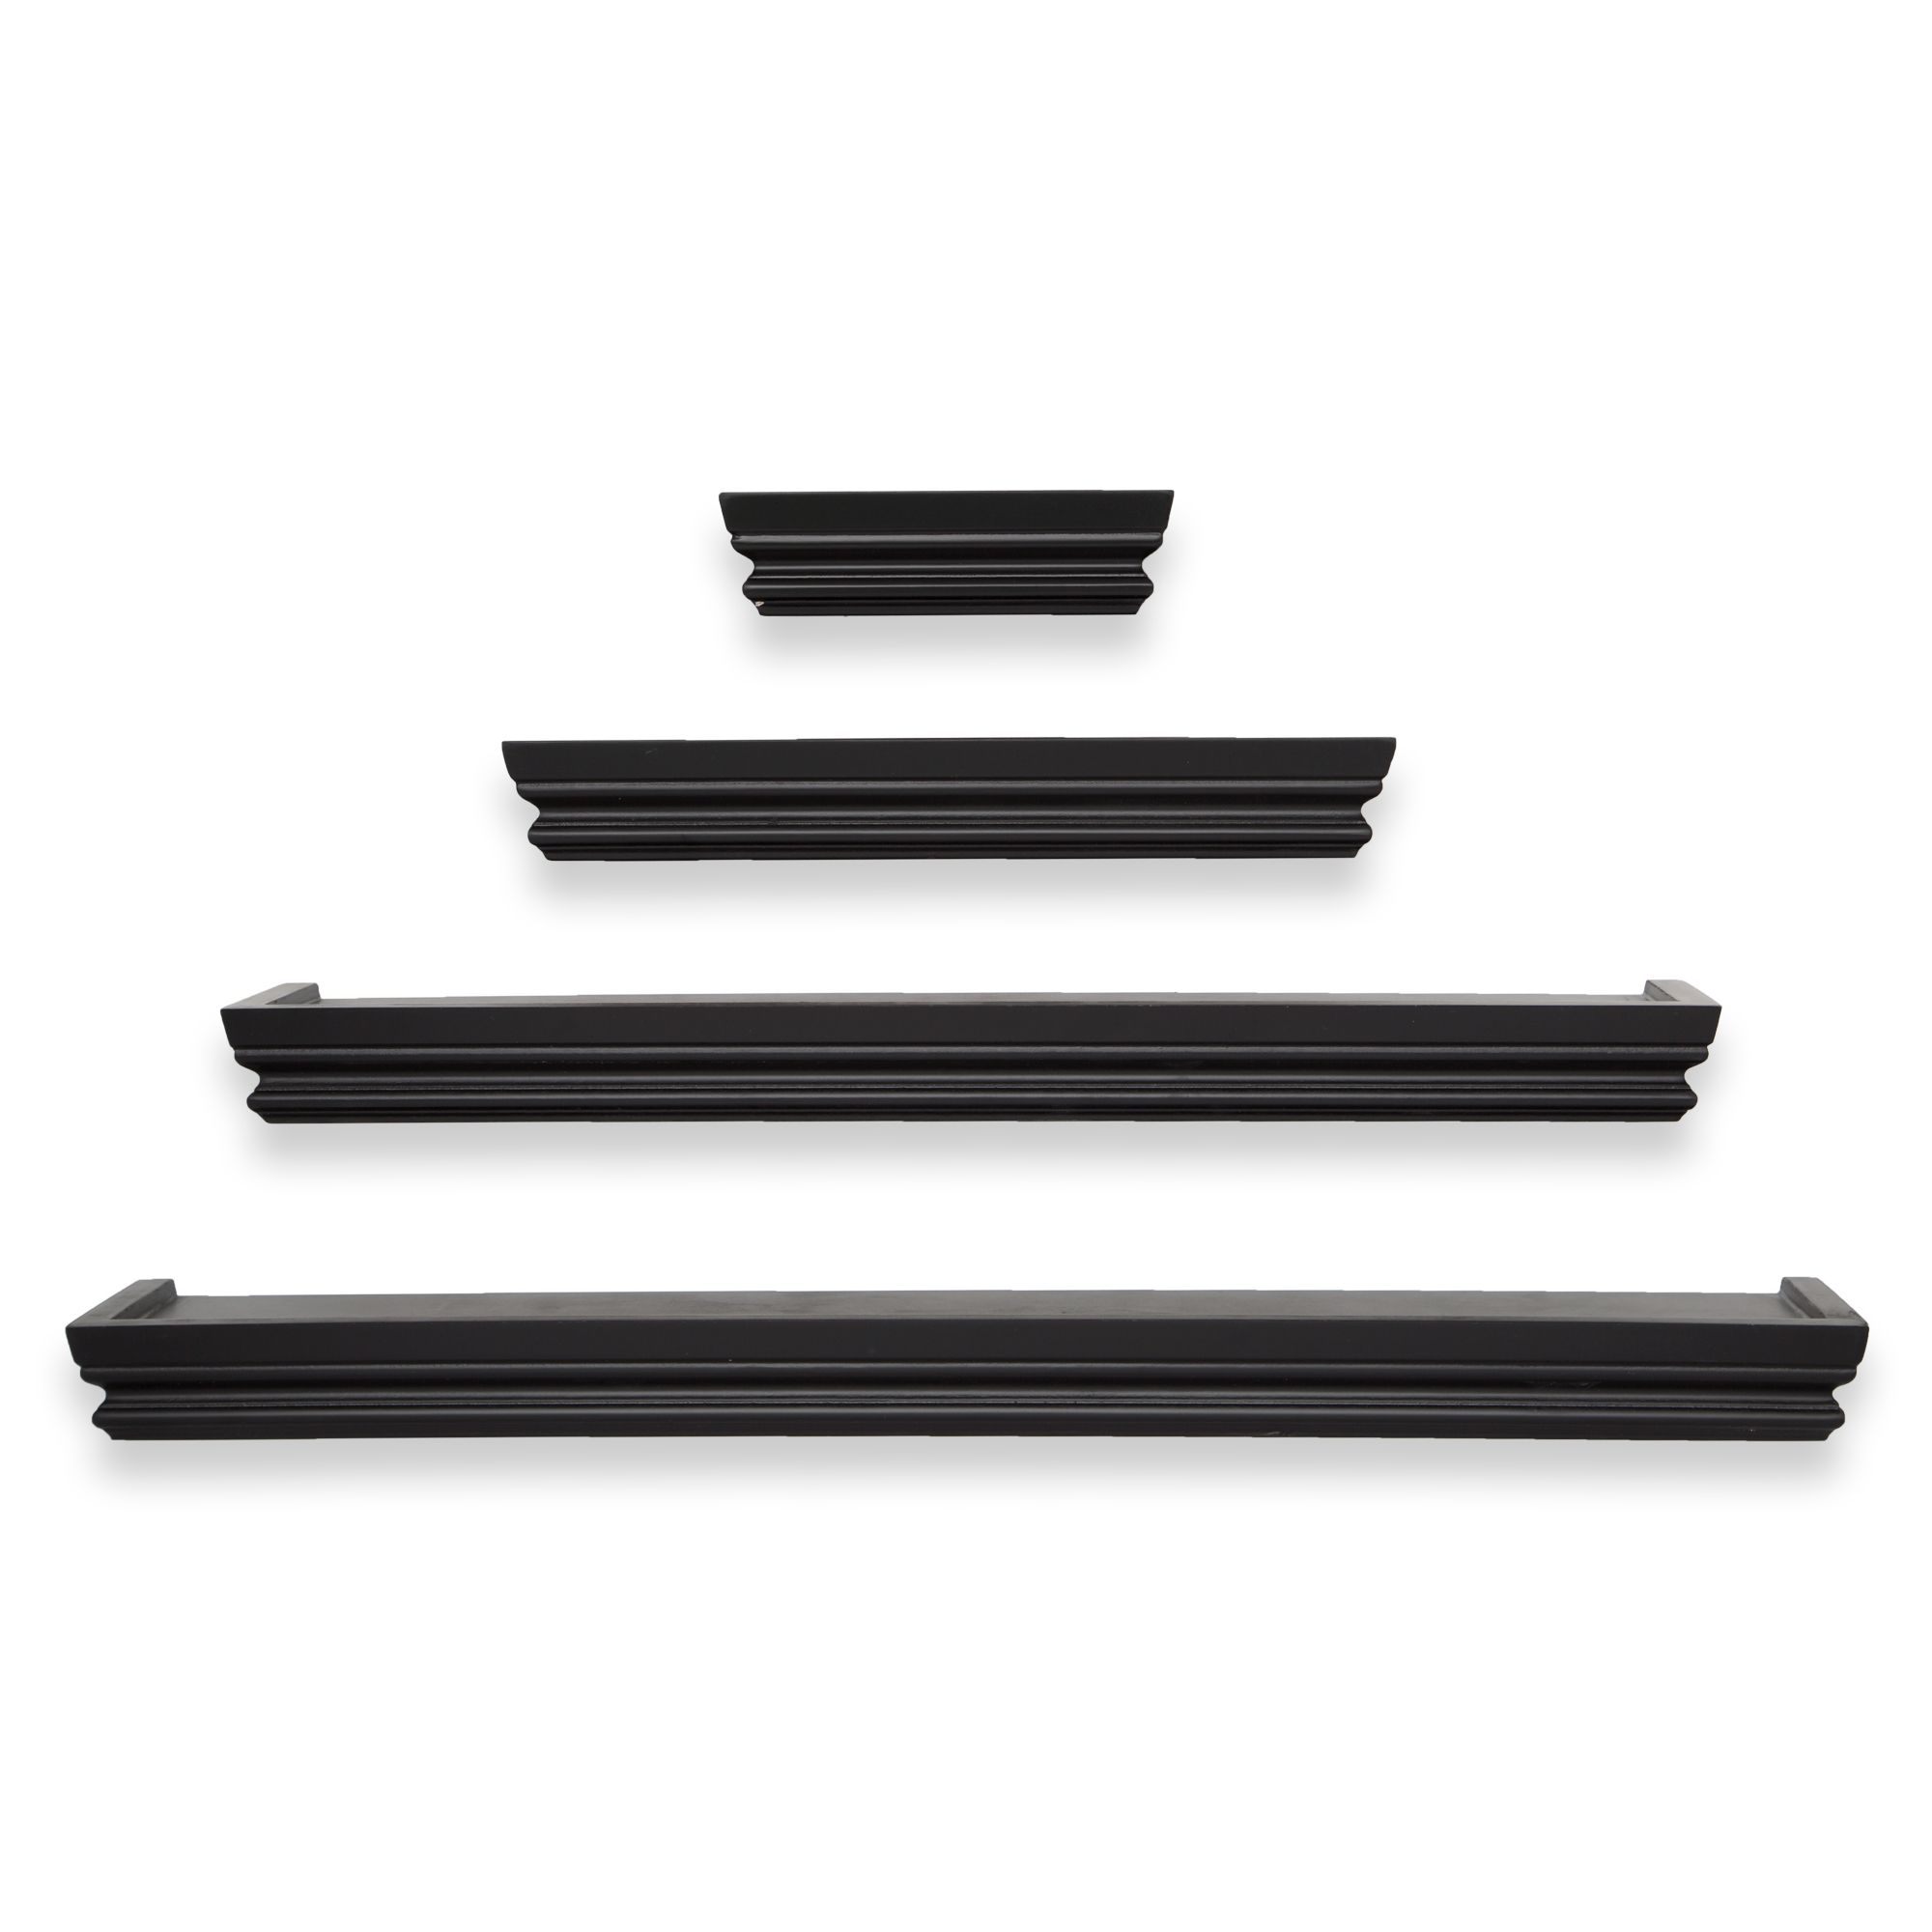 set of 4 crown molding shelving black 24 20 12 6 gordmans rh pinterest com